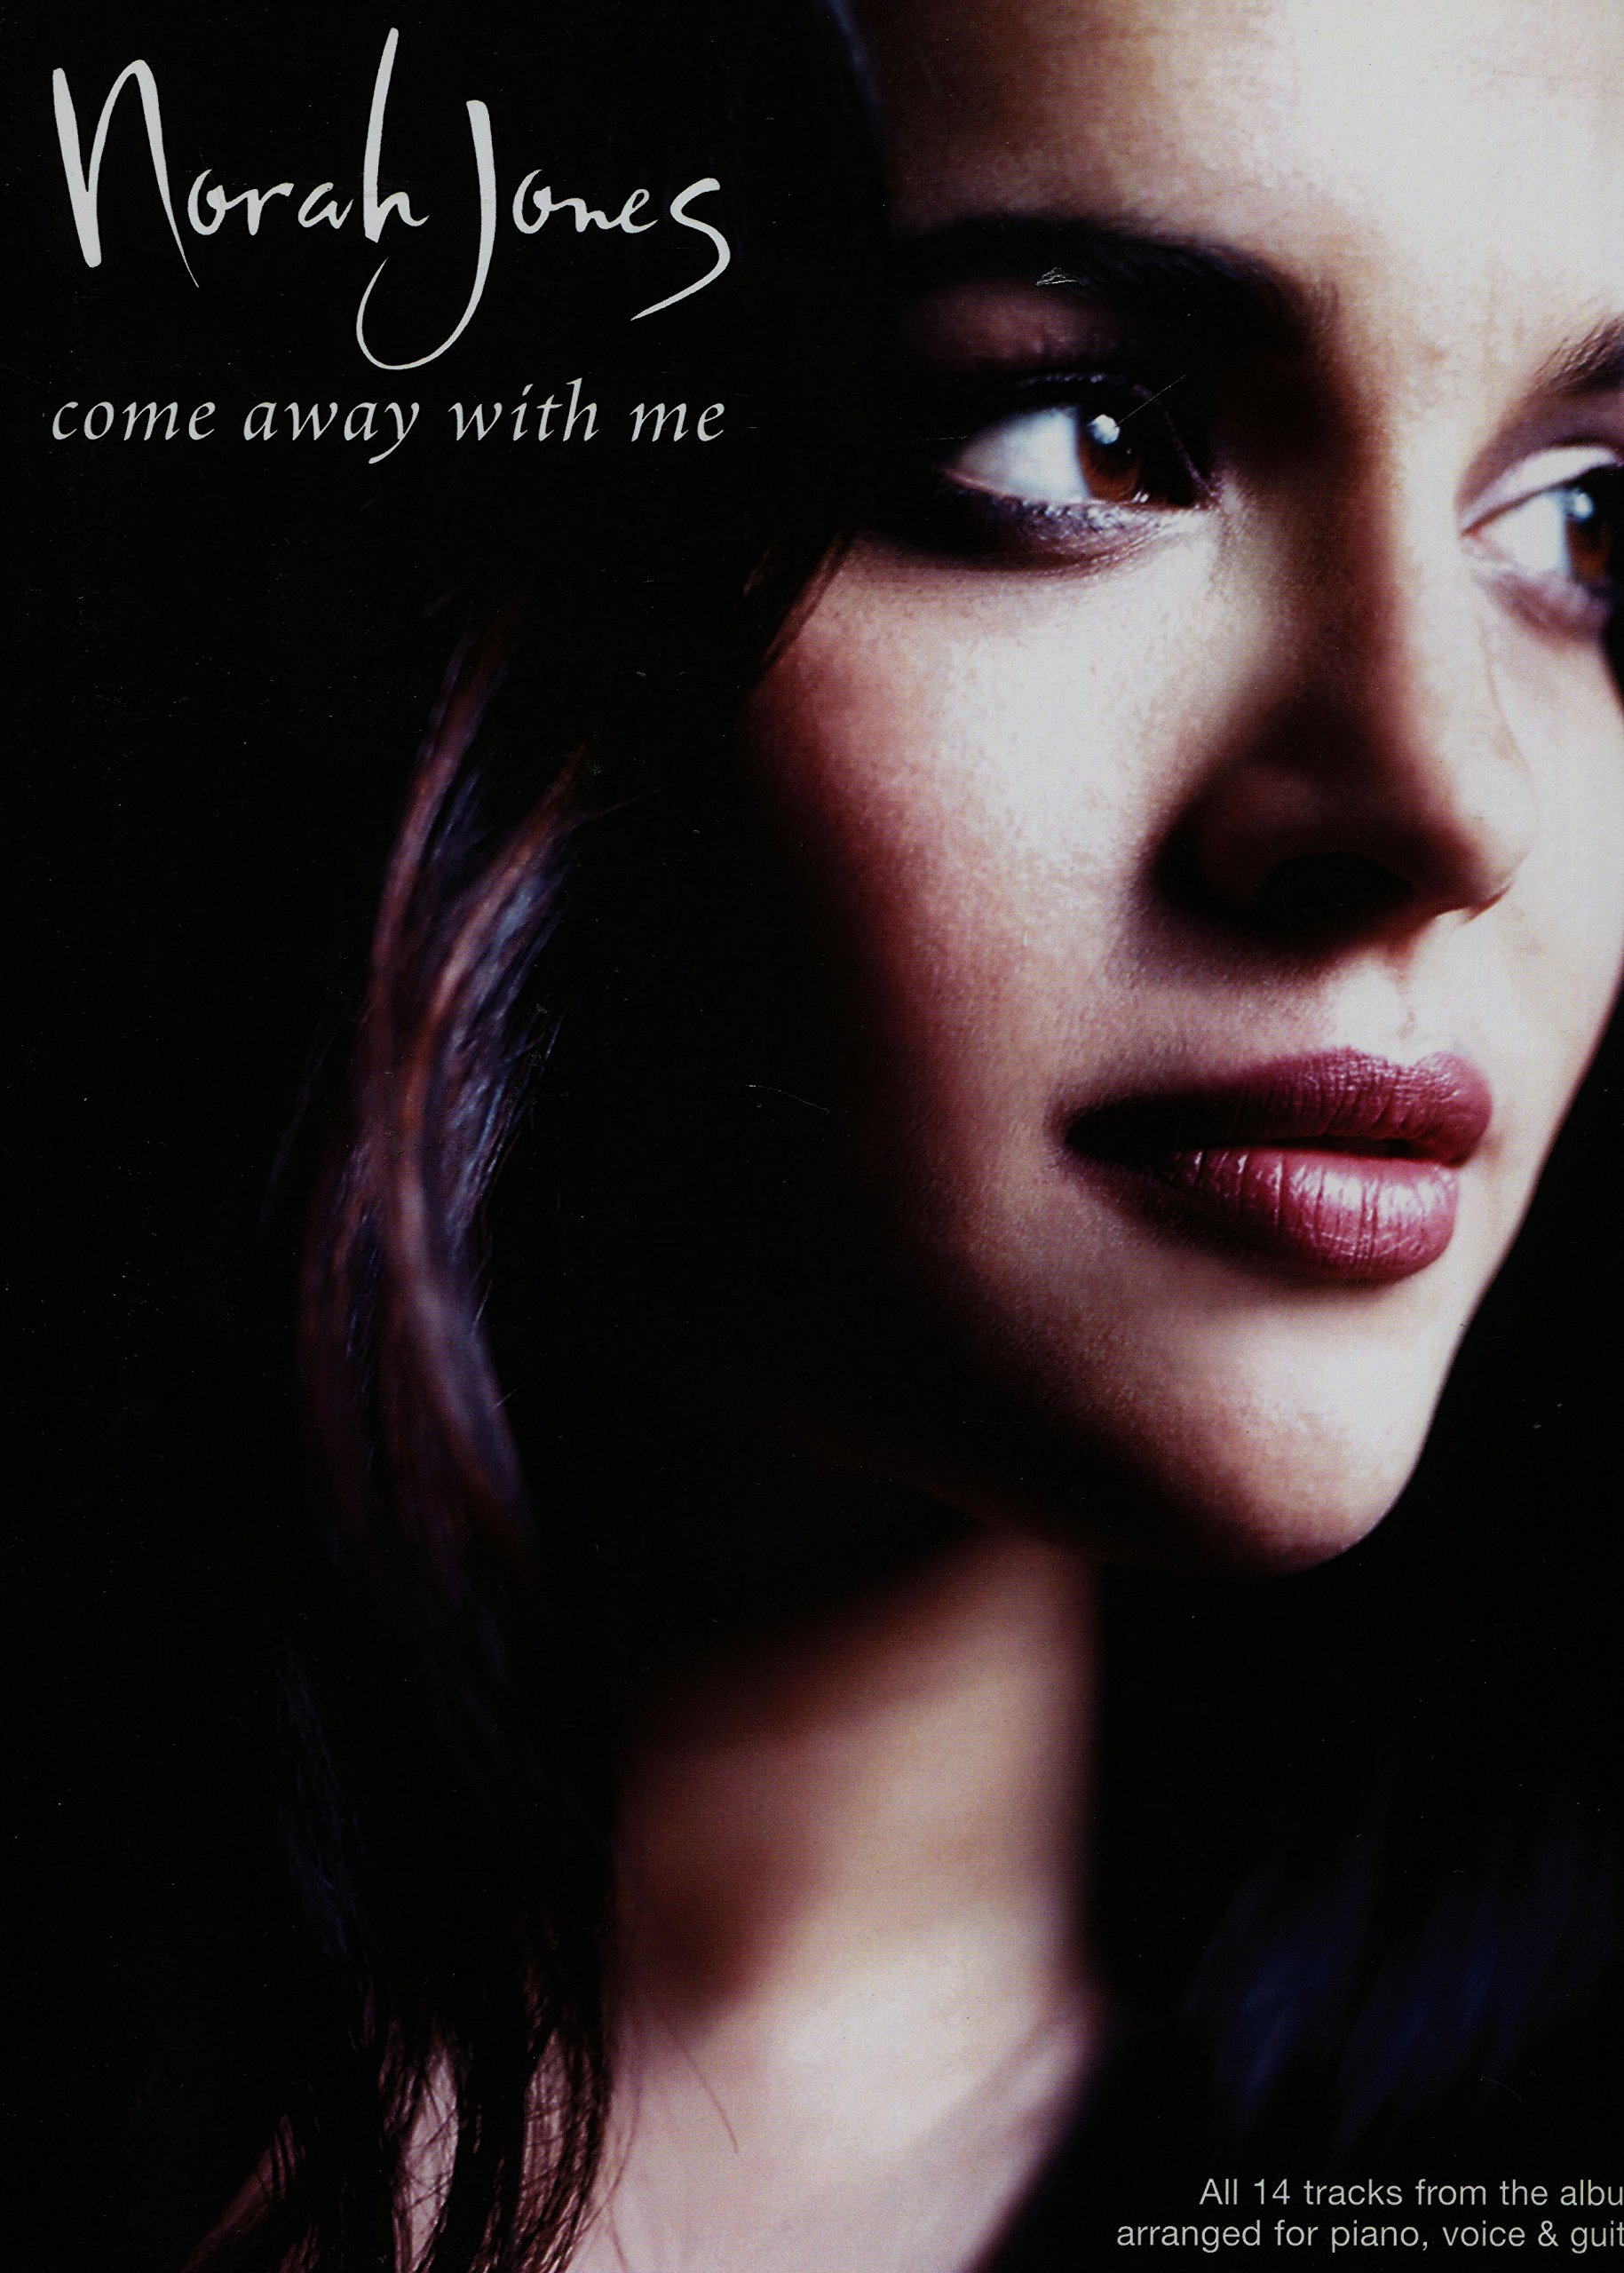 Buy Norah Jones Come Away With Me Pvg Book Online At Low Prices In India Norah Jones Come Away With Me Pvg Reviews Ratings Amazon In